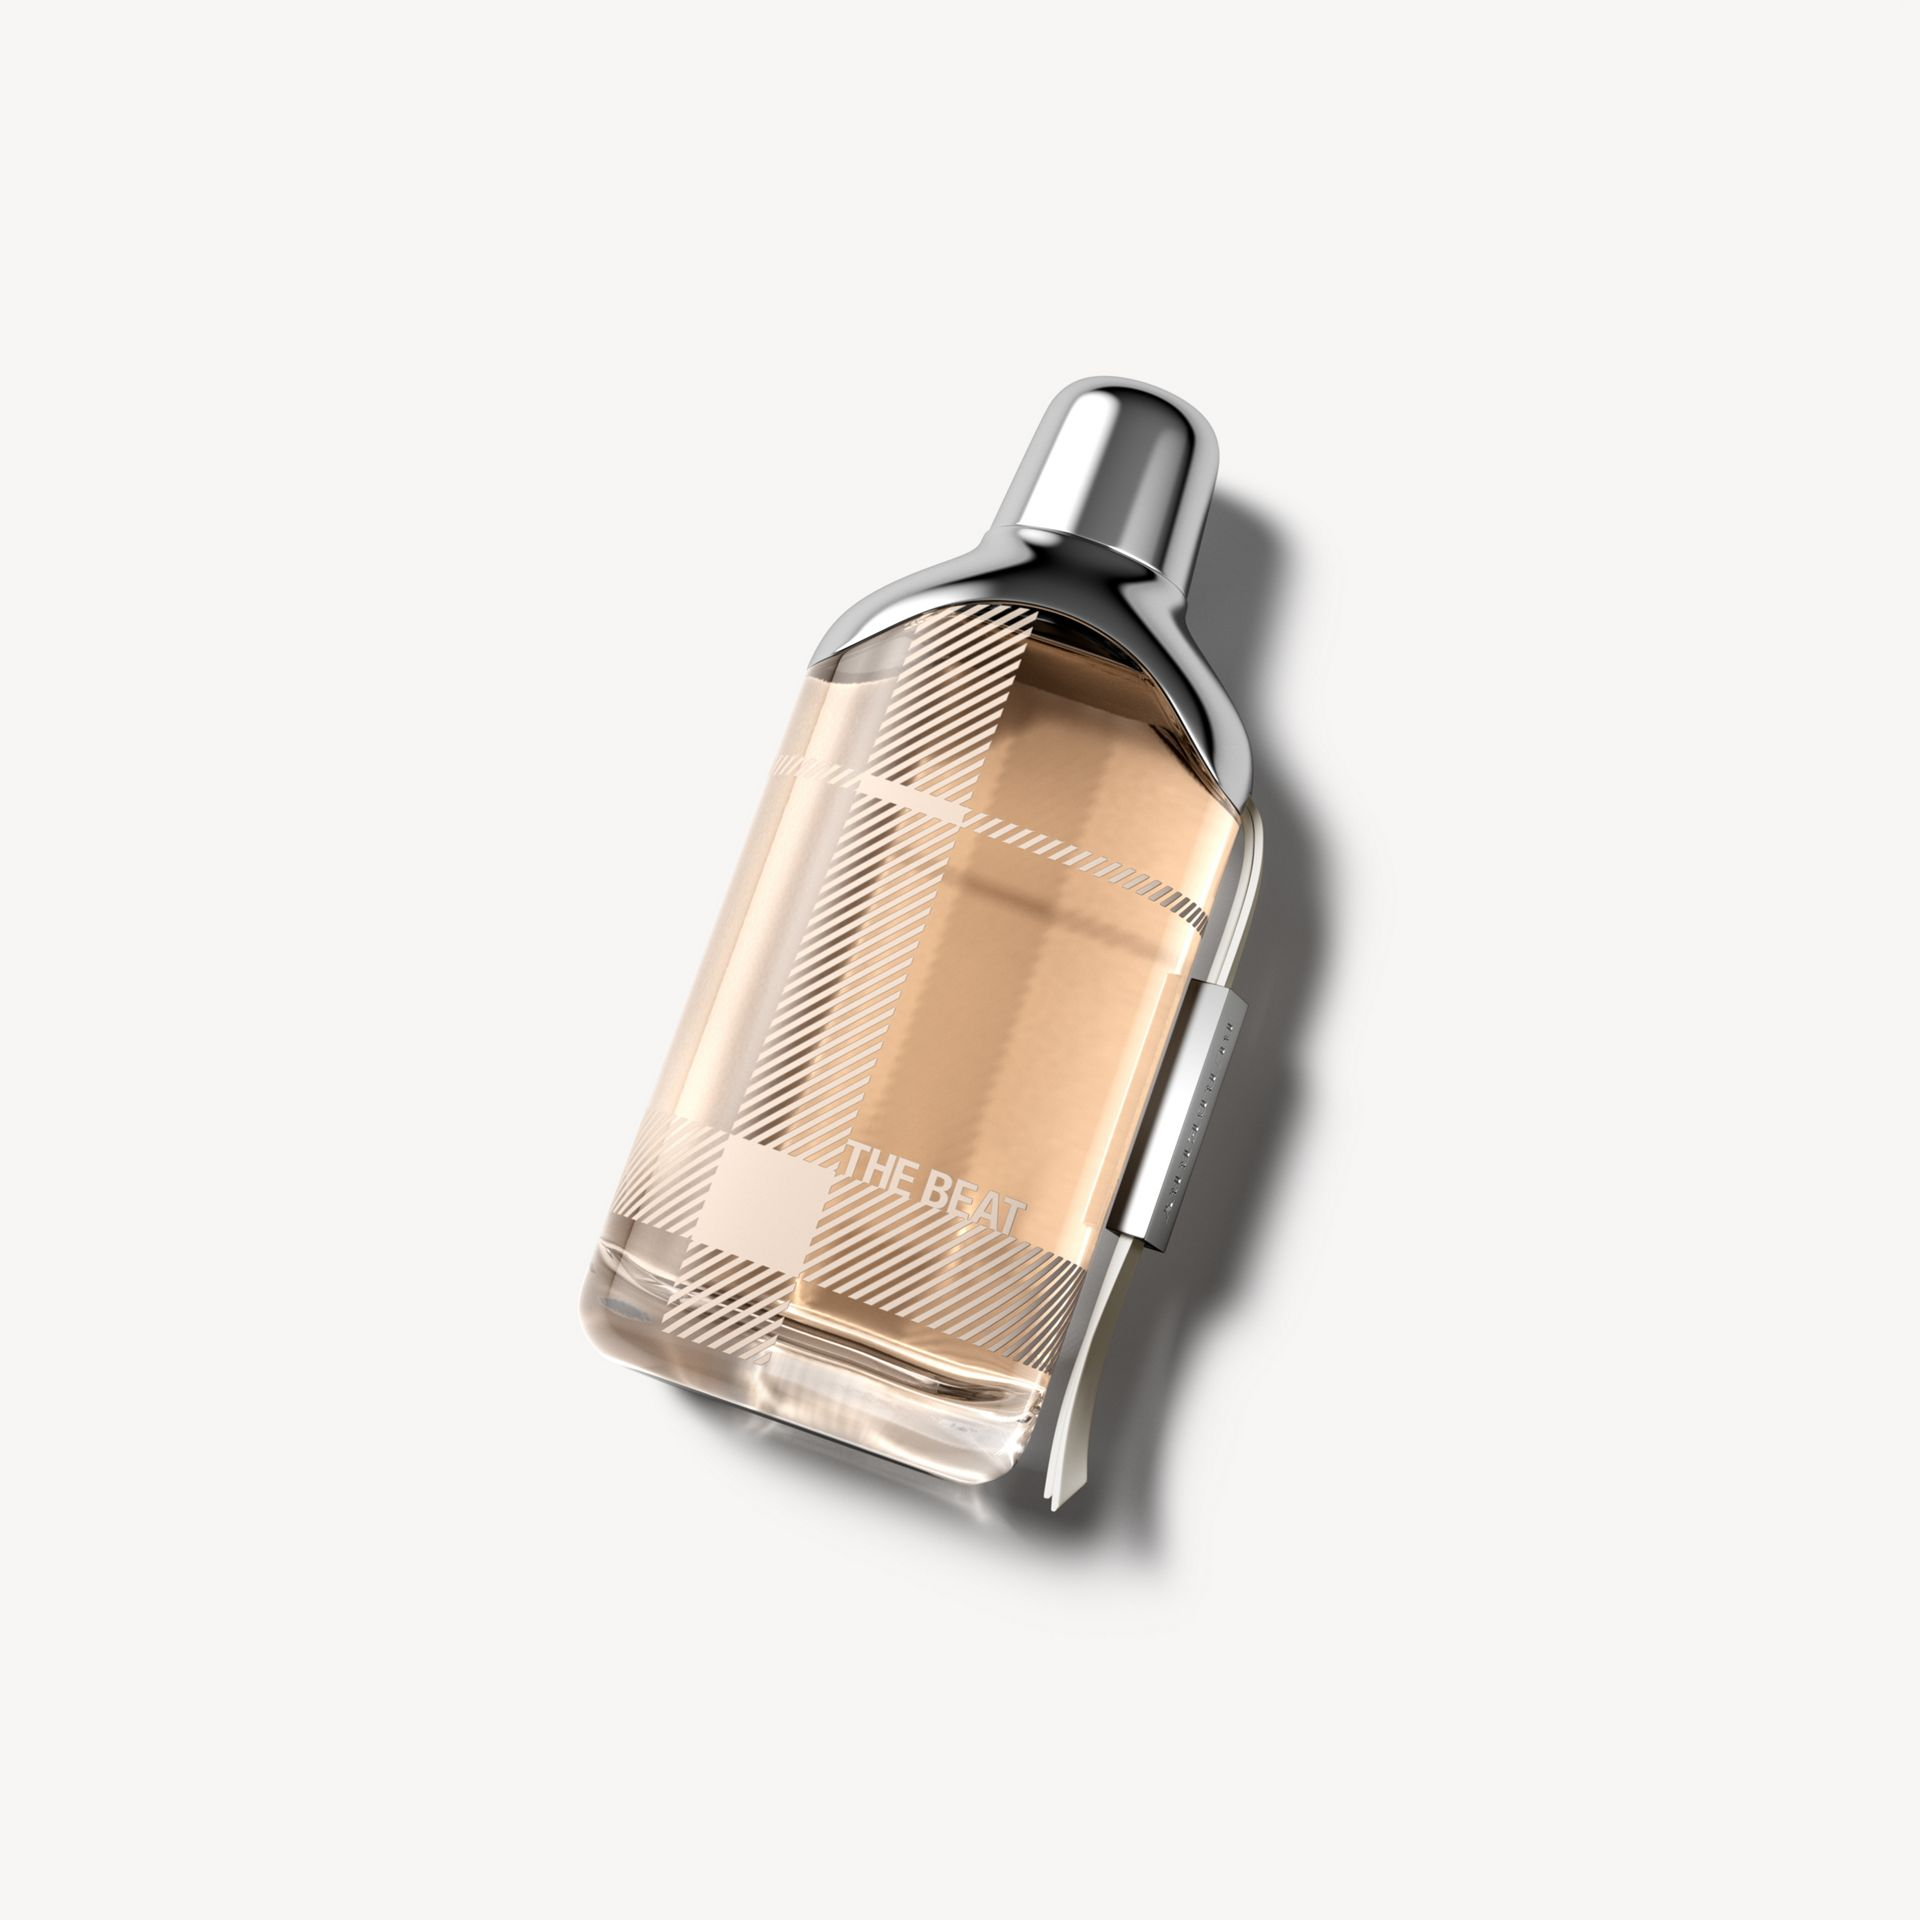 Burberry The Beat Eau de Parfum 75ml - Women | Burberry Australia - gallery image 0